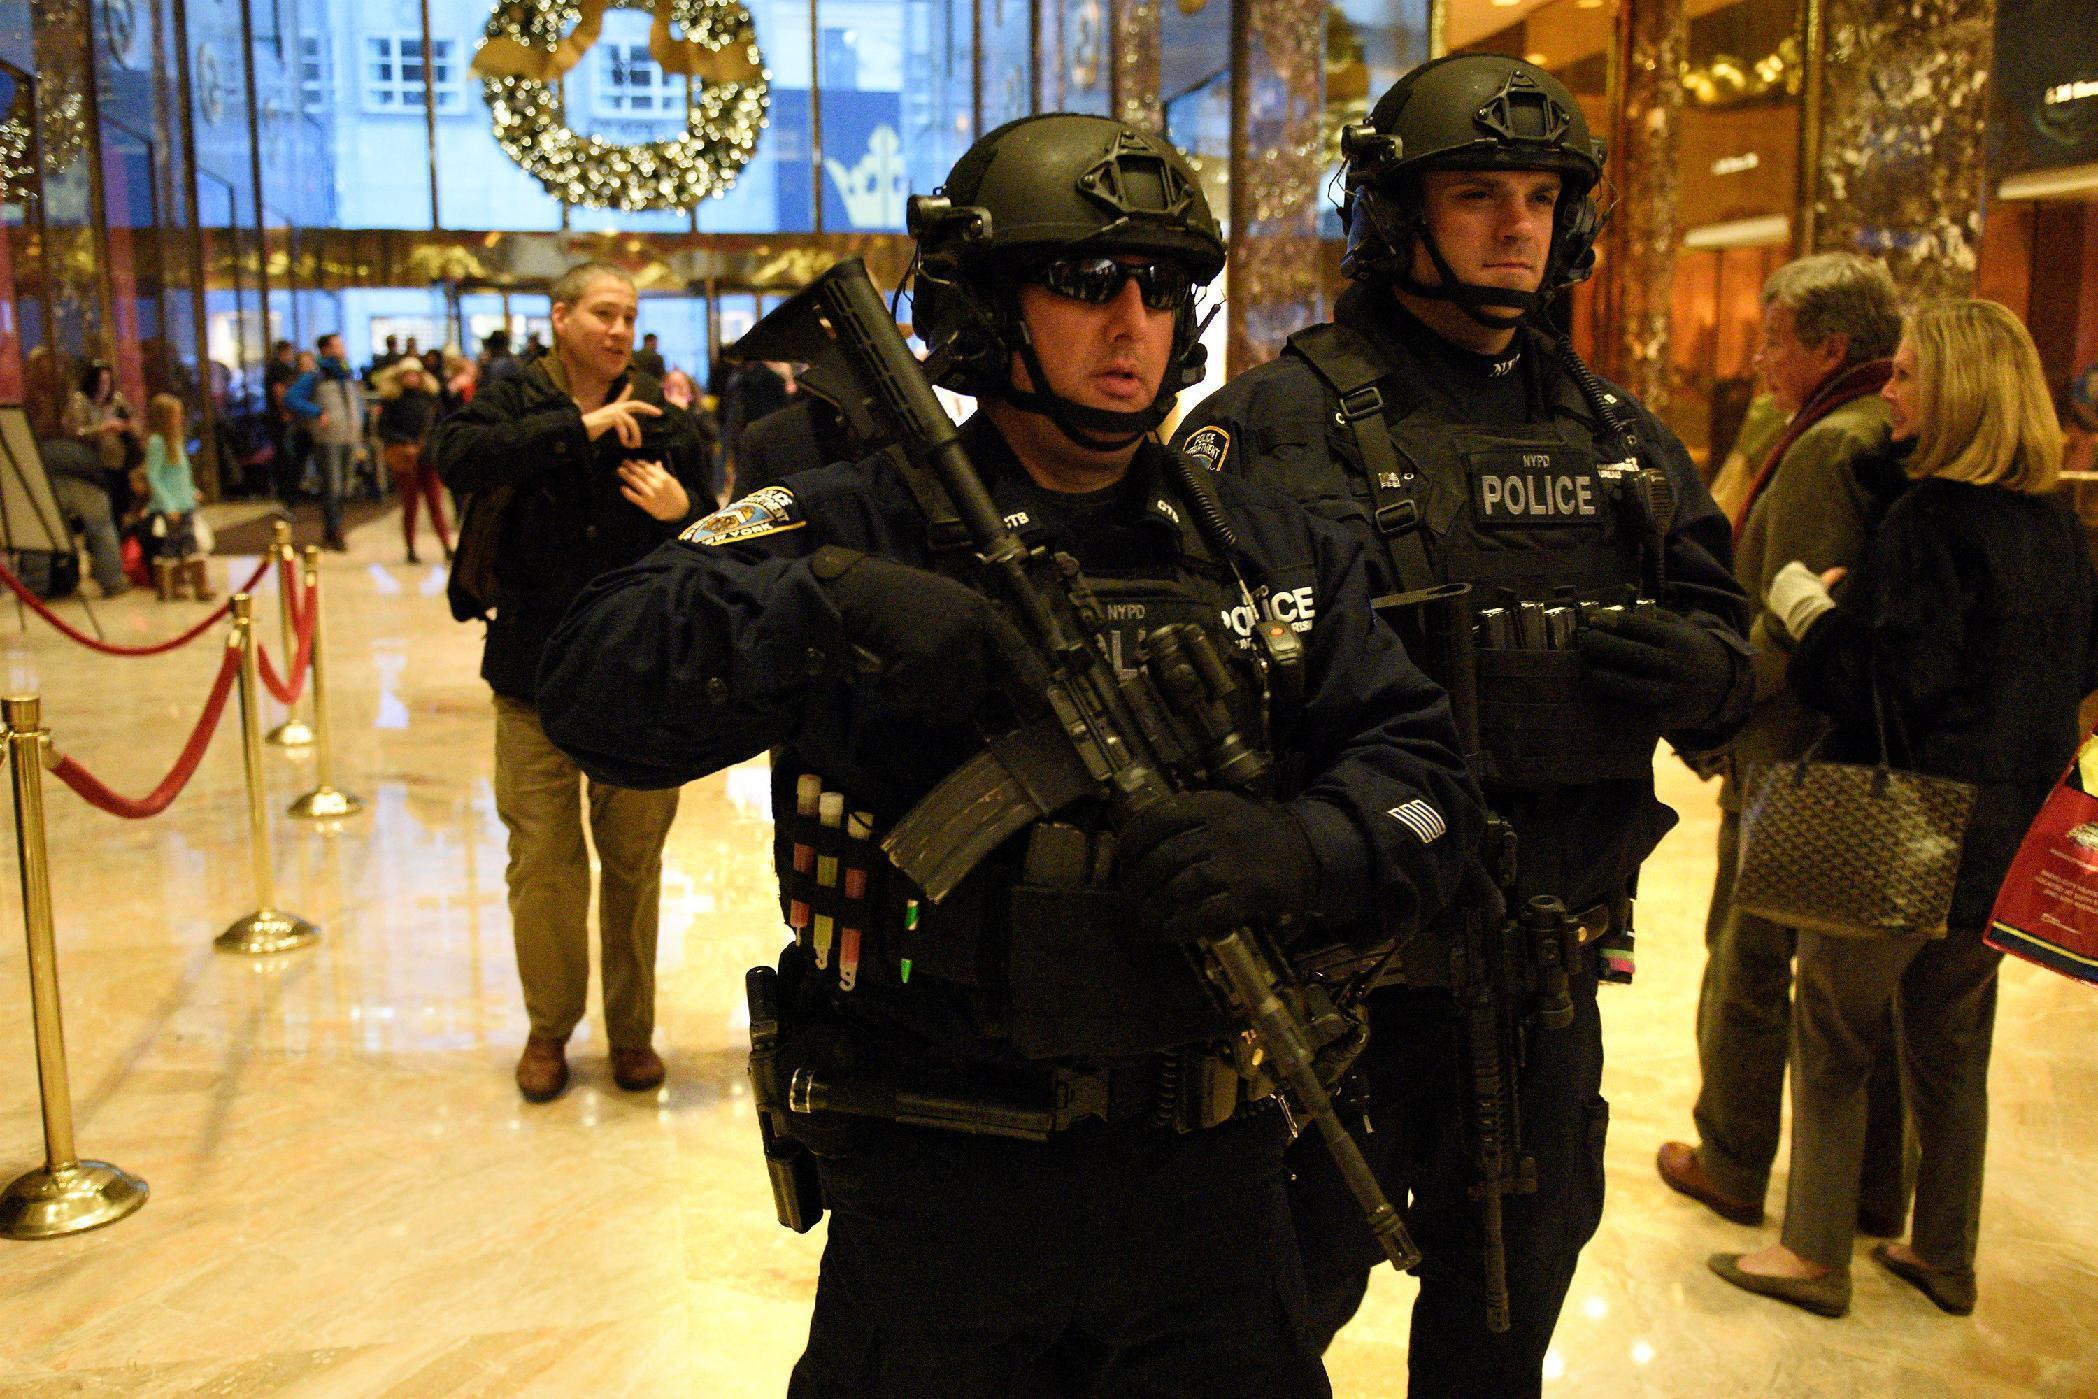 New York asks U.S. government for $35 million in Trump security costs